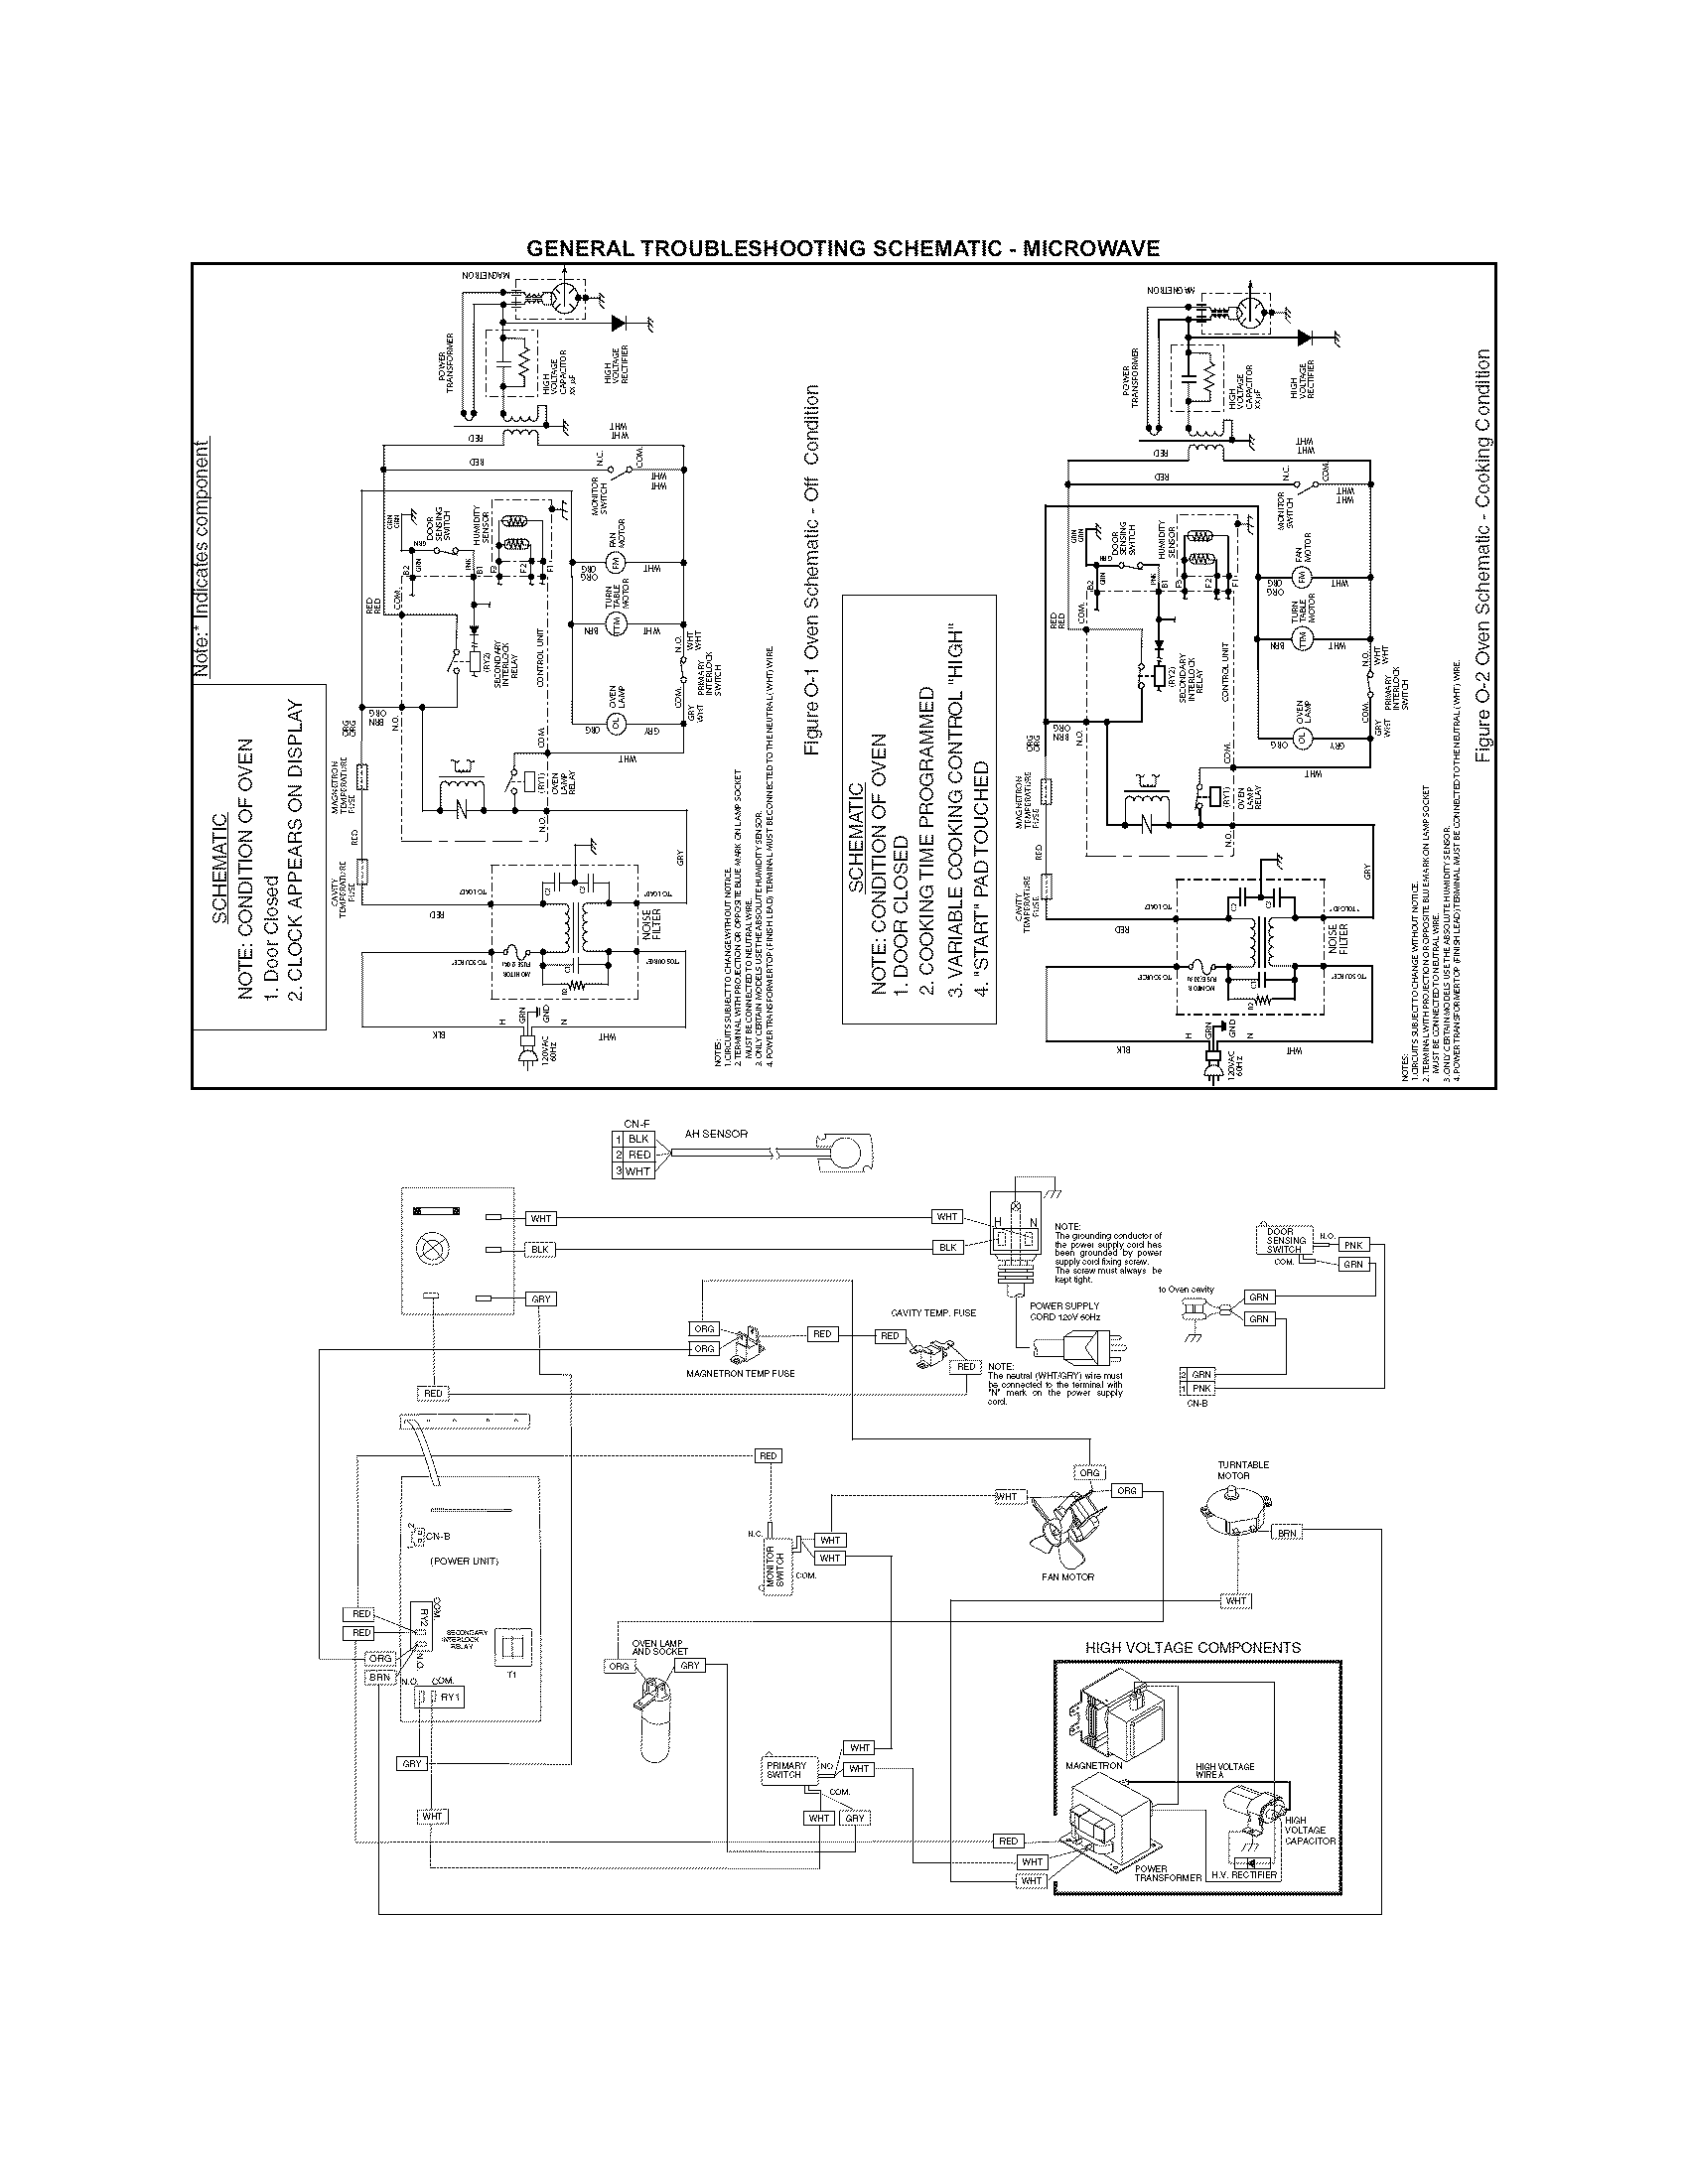 Generous microwave circuit diagram contemporary electrical system